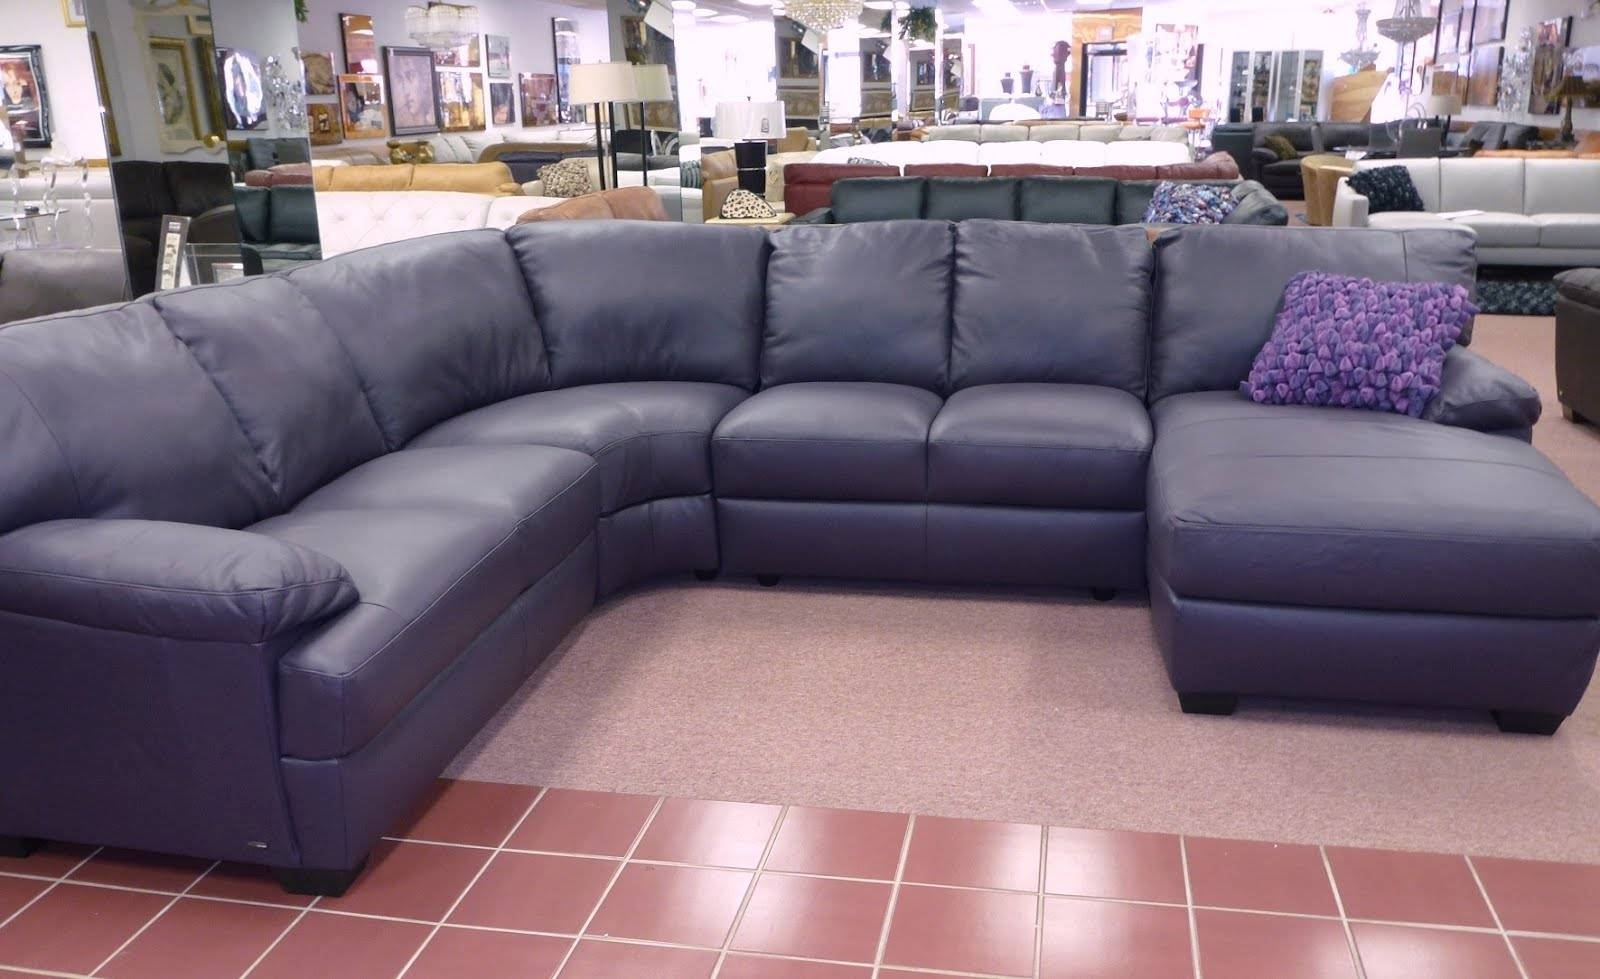 Sale On Sofas 30 Photos Leather Sofa Sectionals For Sale